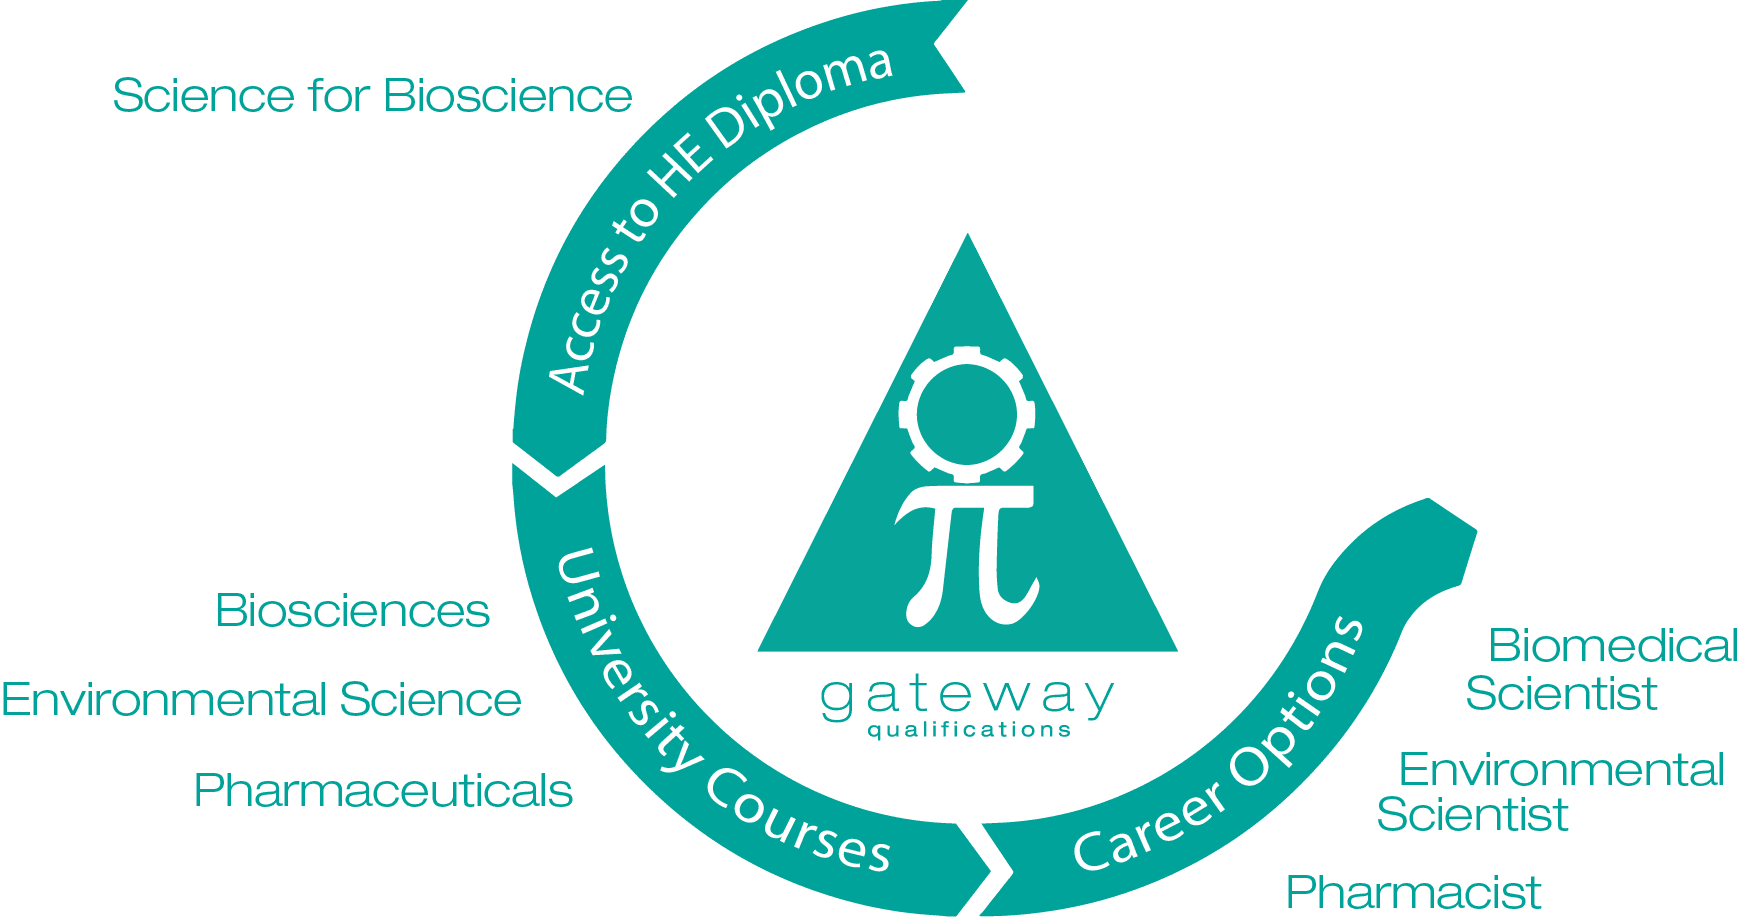 Access to HE Science for Bioscience